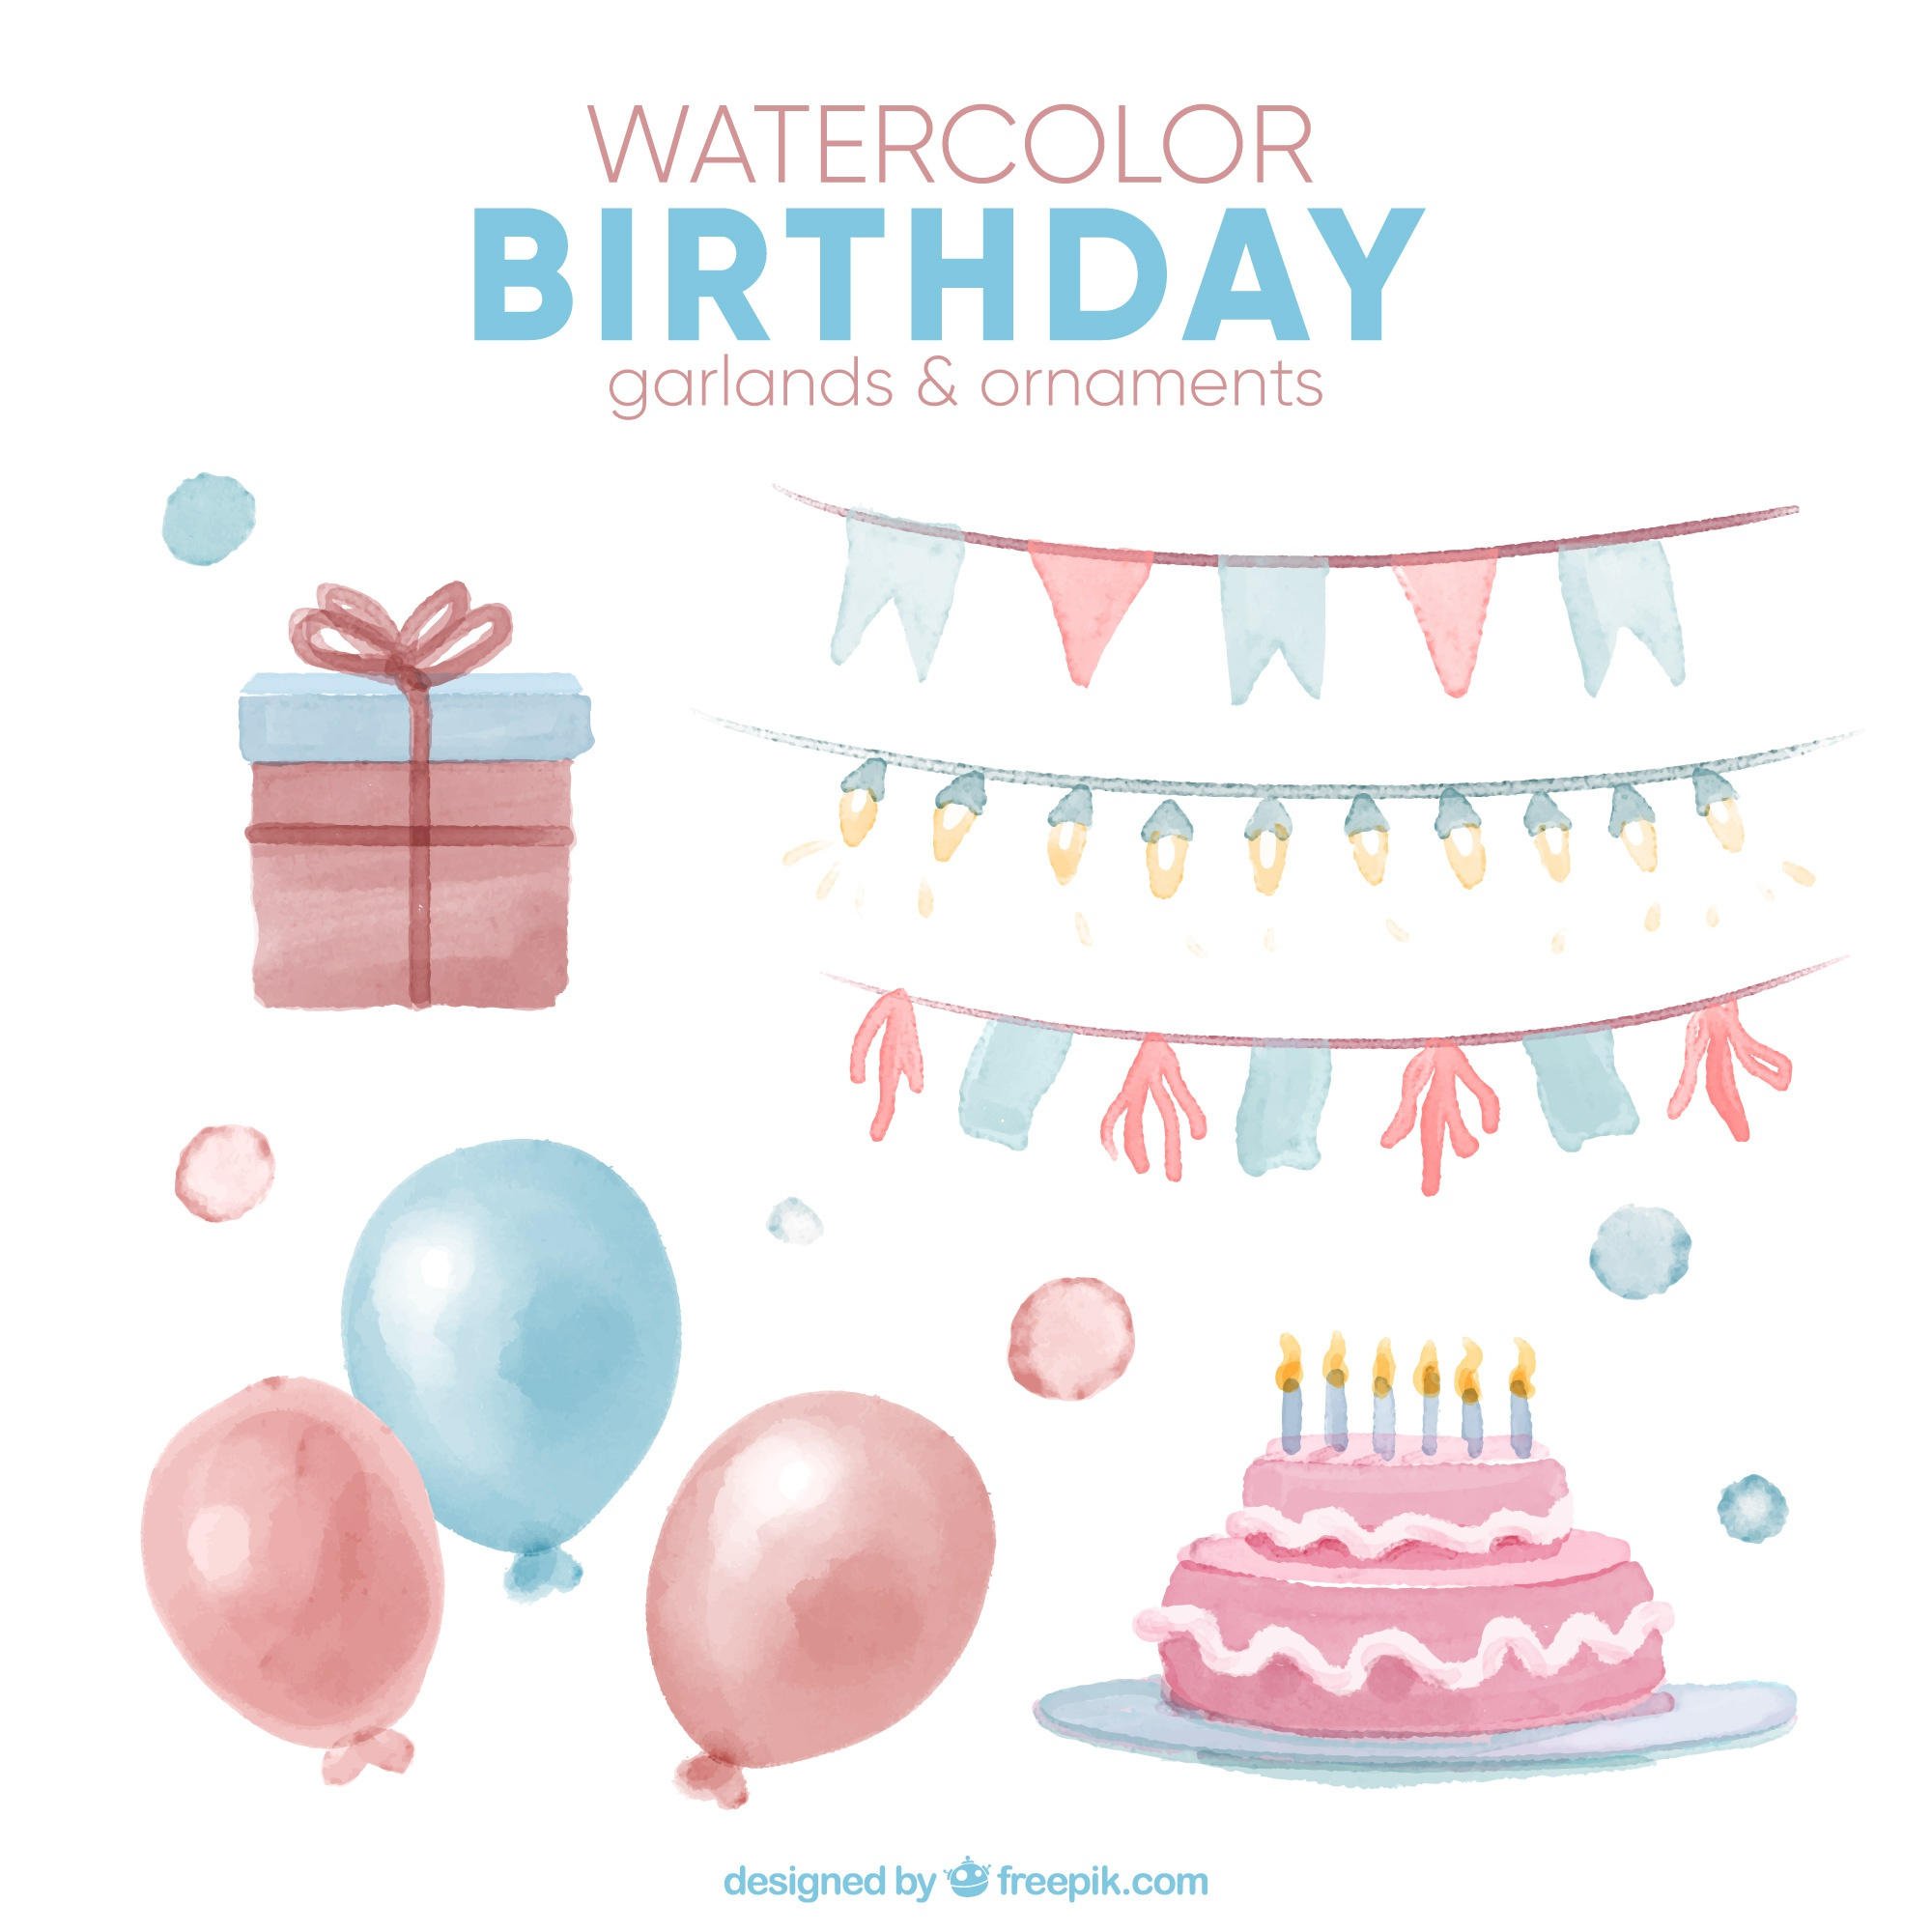 Watercolor set of birthday garlands and ornaments